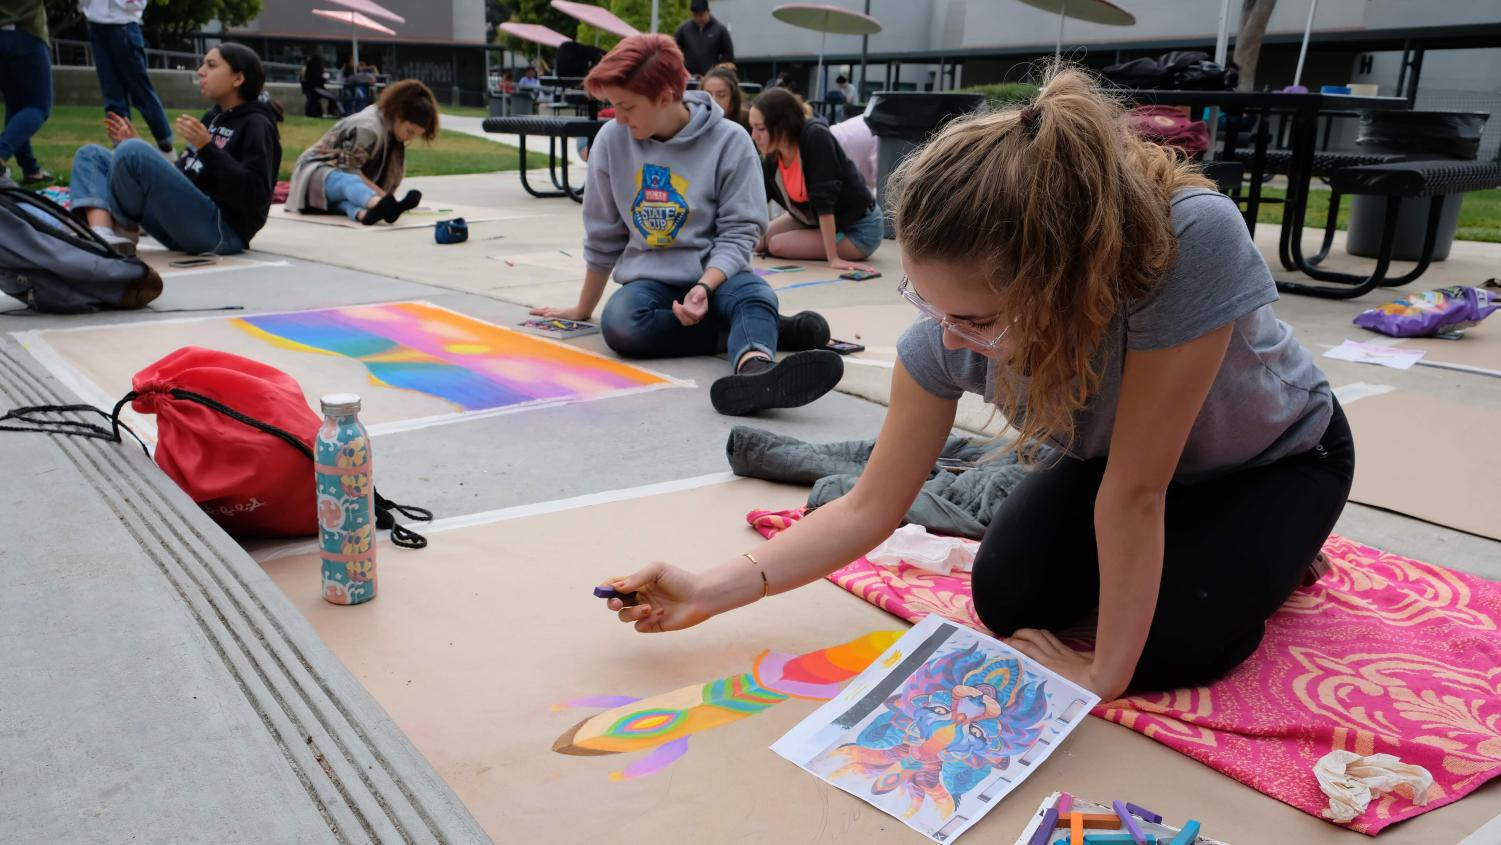 Noelle Basta '19 focuses intently on her chalk piece.